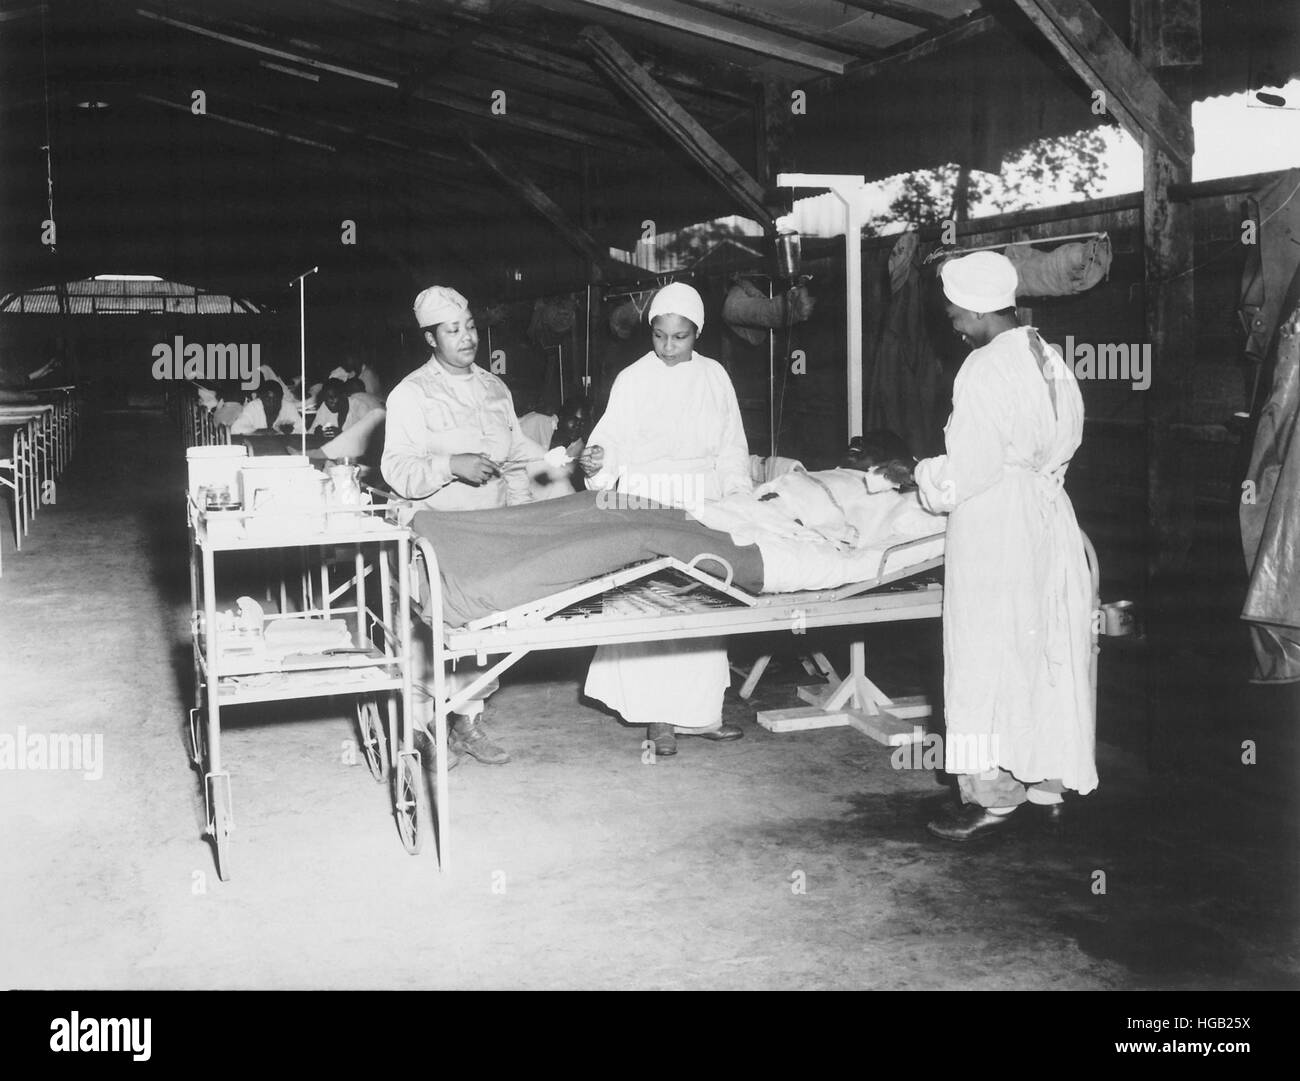 Surgical ward treatment at the 268th Station Hospital in New Guinea, June 1944. - Stock Image